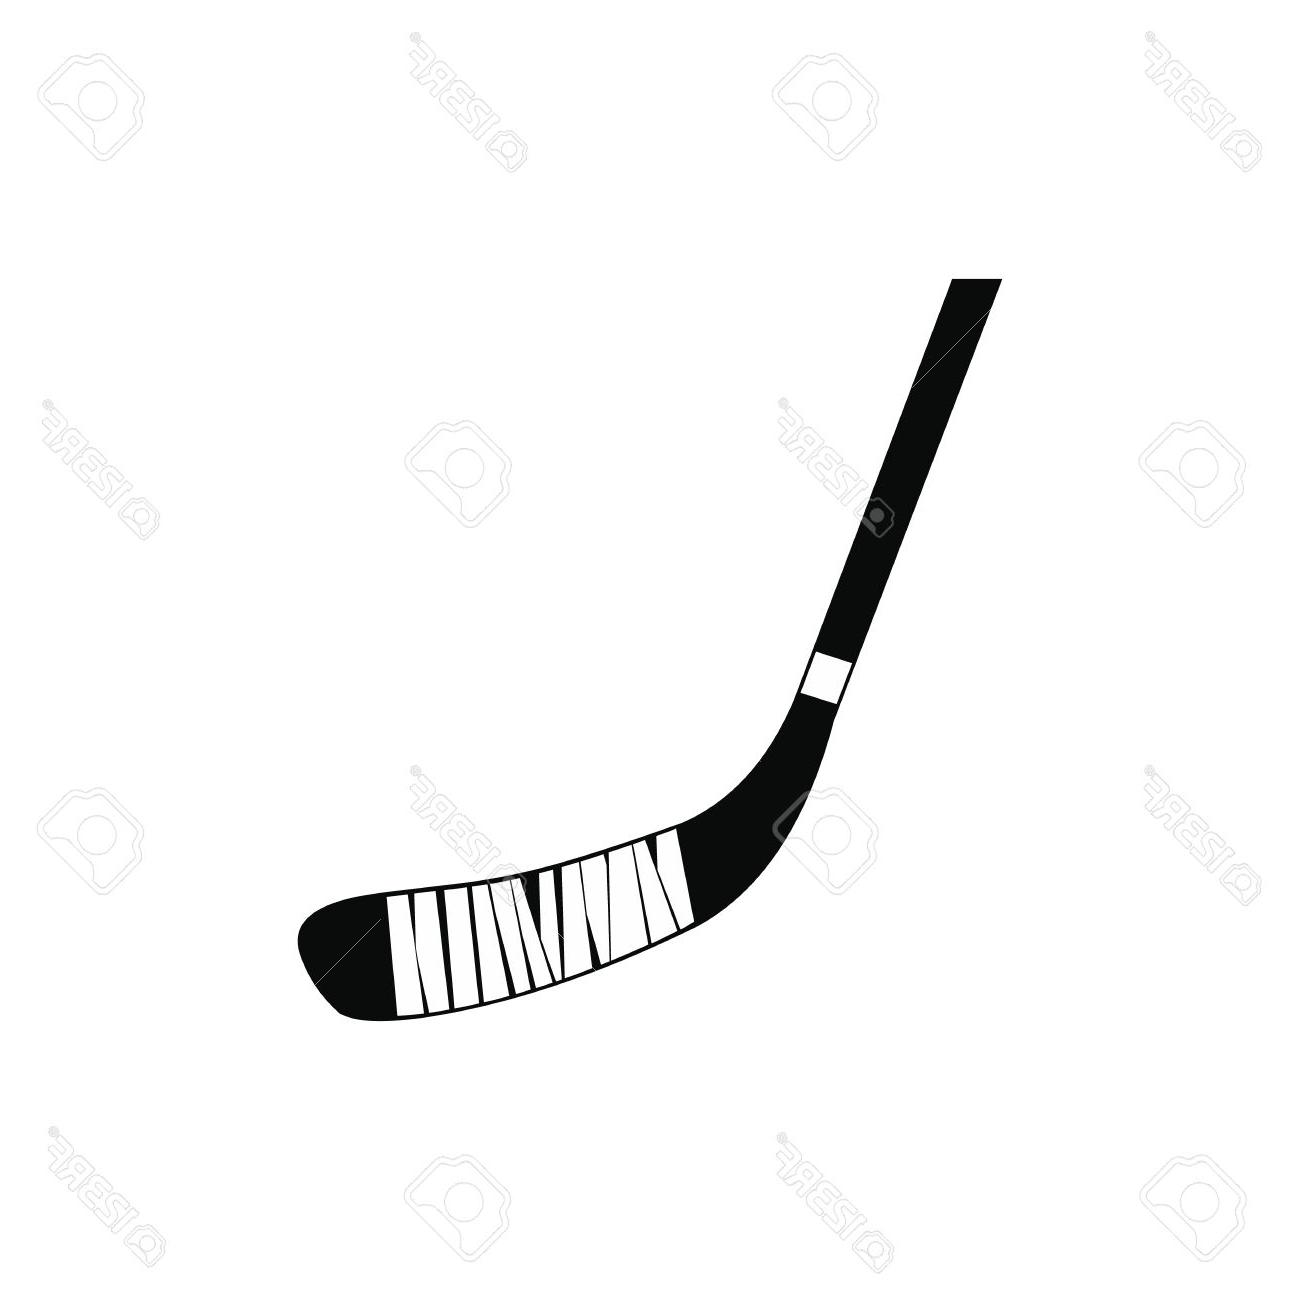 1300x1300 Hockey Stick Black Simple Icon Isolated On White Background Stock